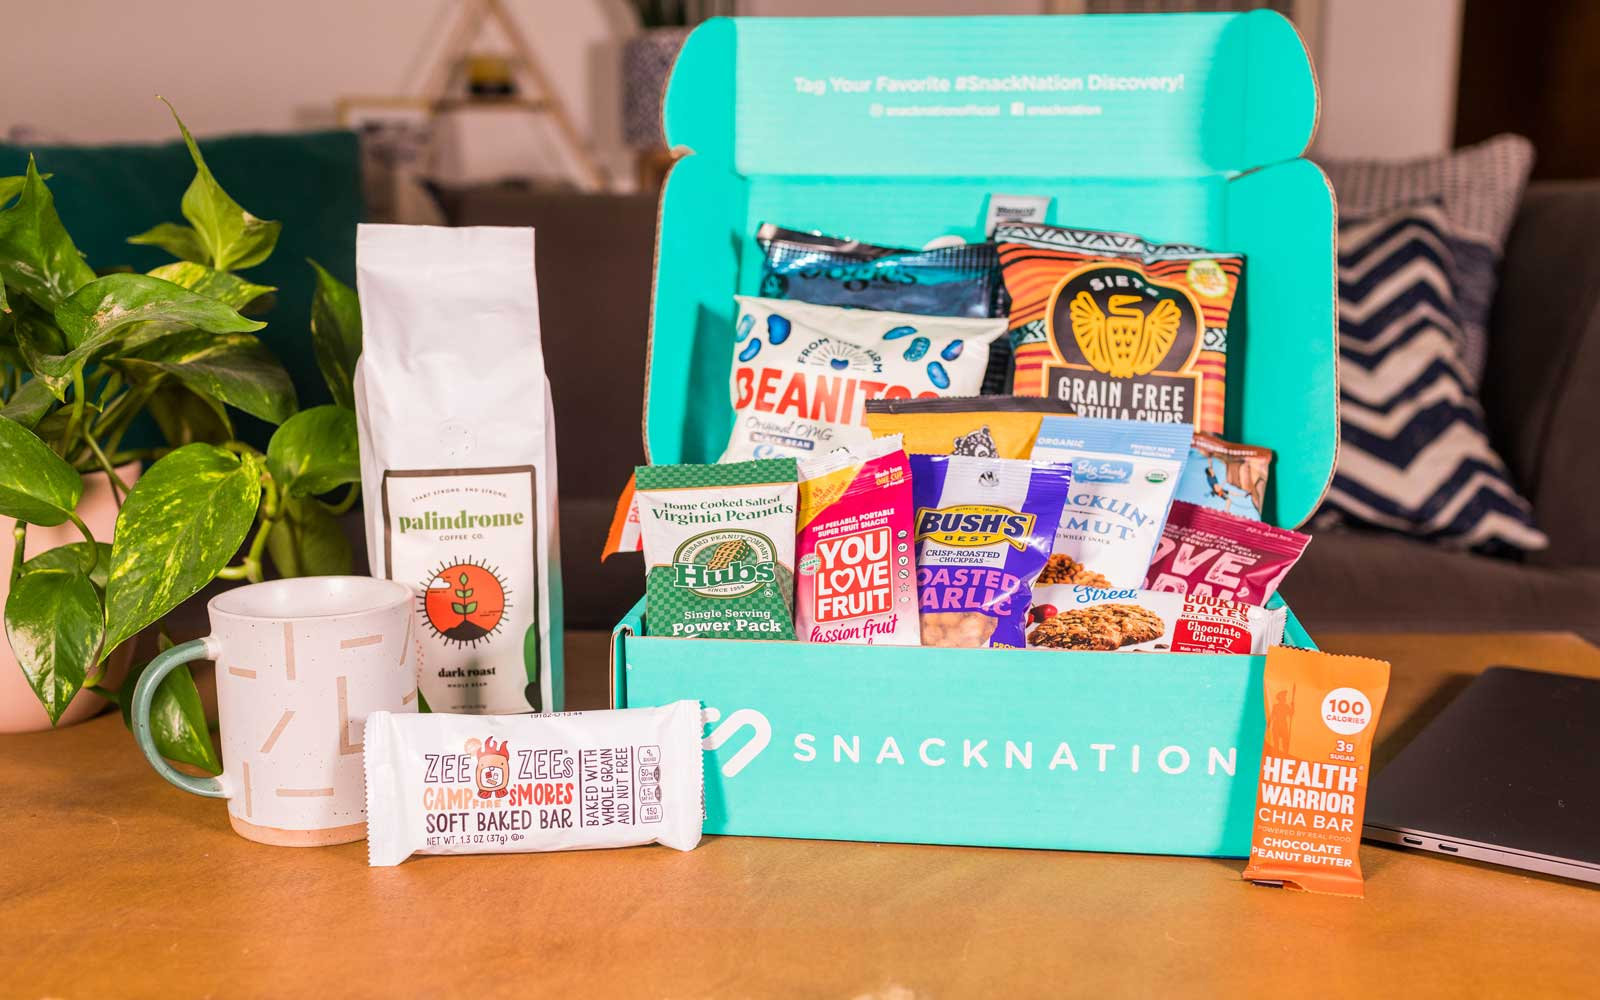 Work-From-Home Wellness Box offering from SnackNation